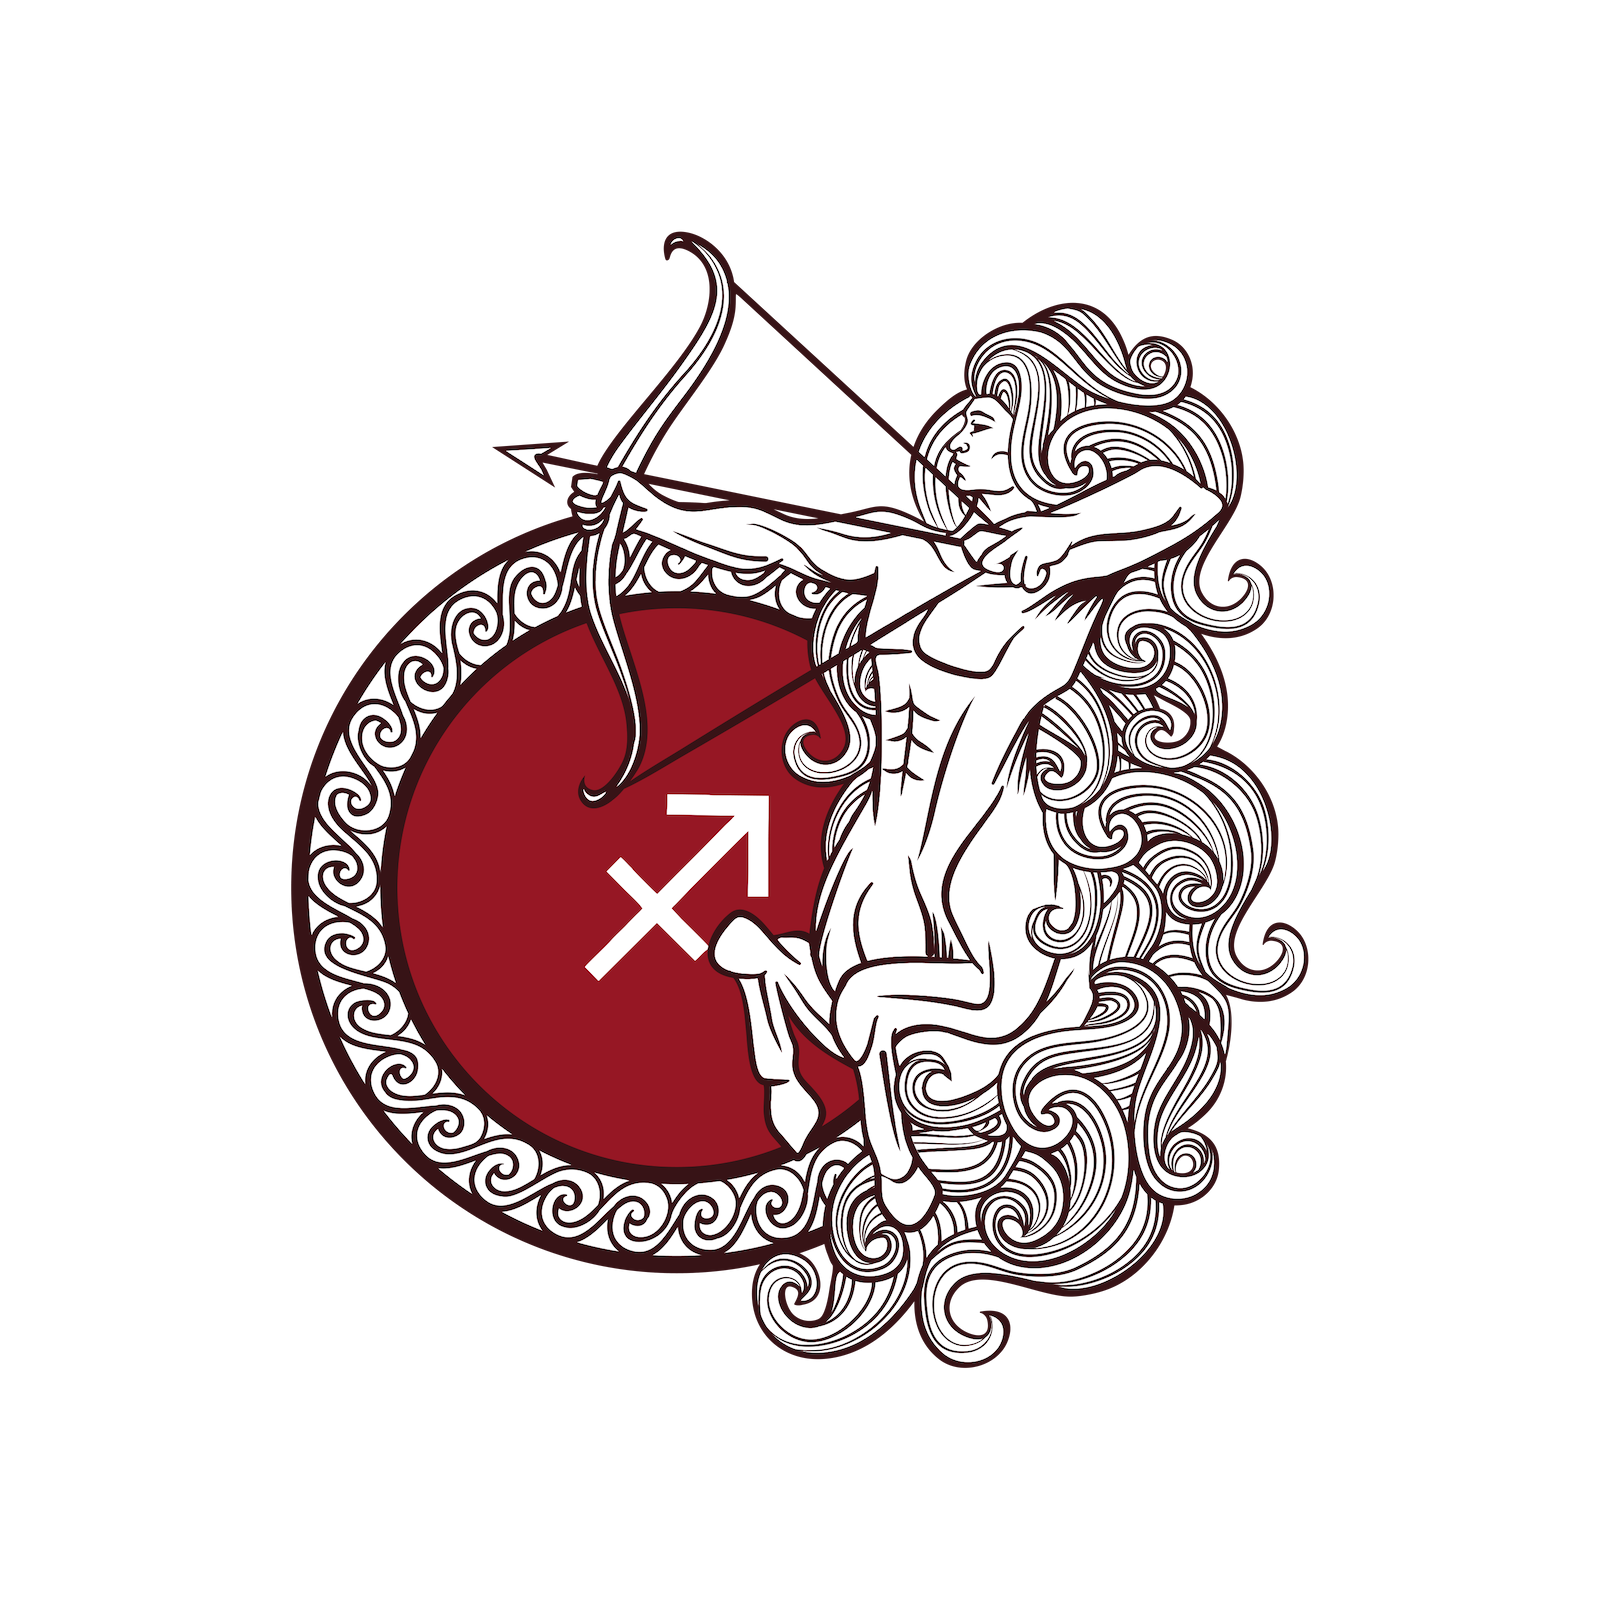 Sagittarius Nov 22 - Dec 21